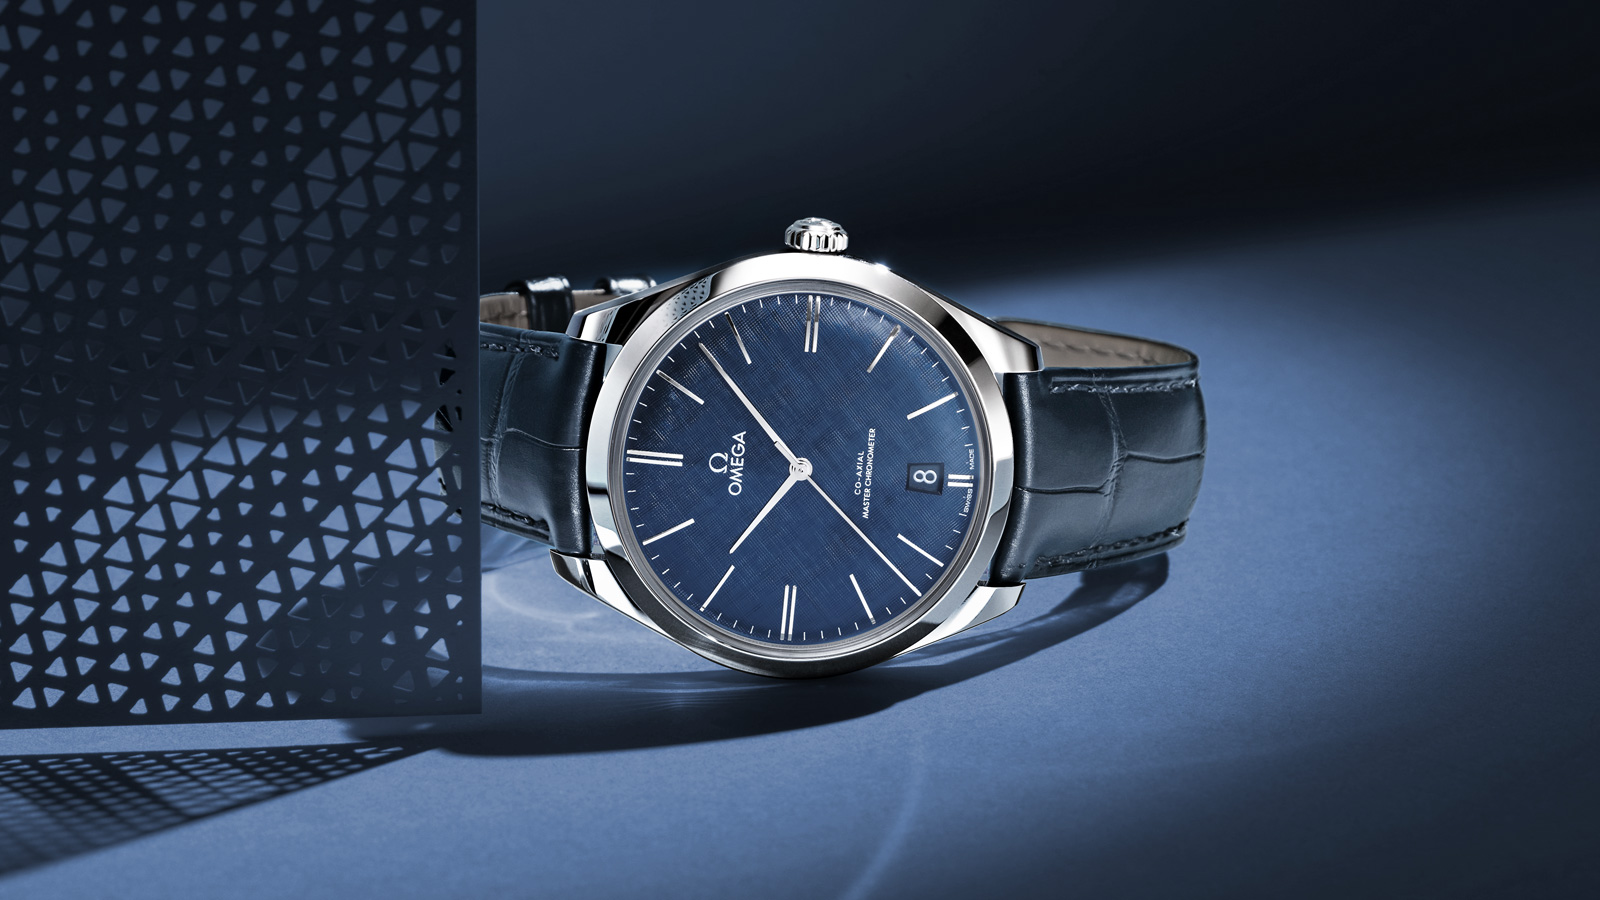 De Ville TRÉSOR Trésor Omega Co‑Axial Master Chronometer 40 mm Montre - 435.13.40.21.03.001